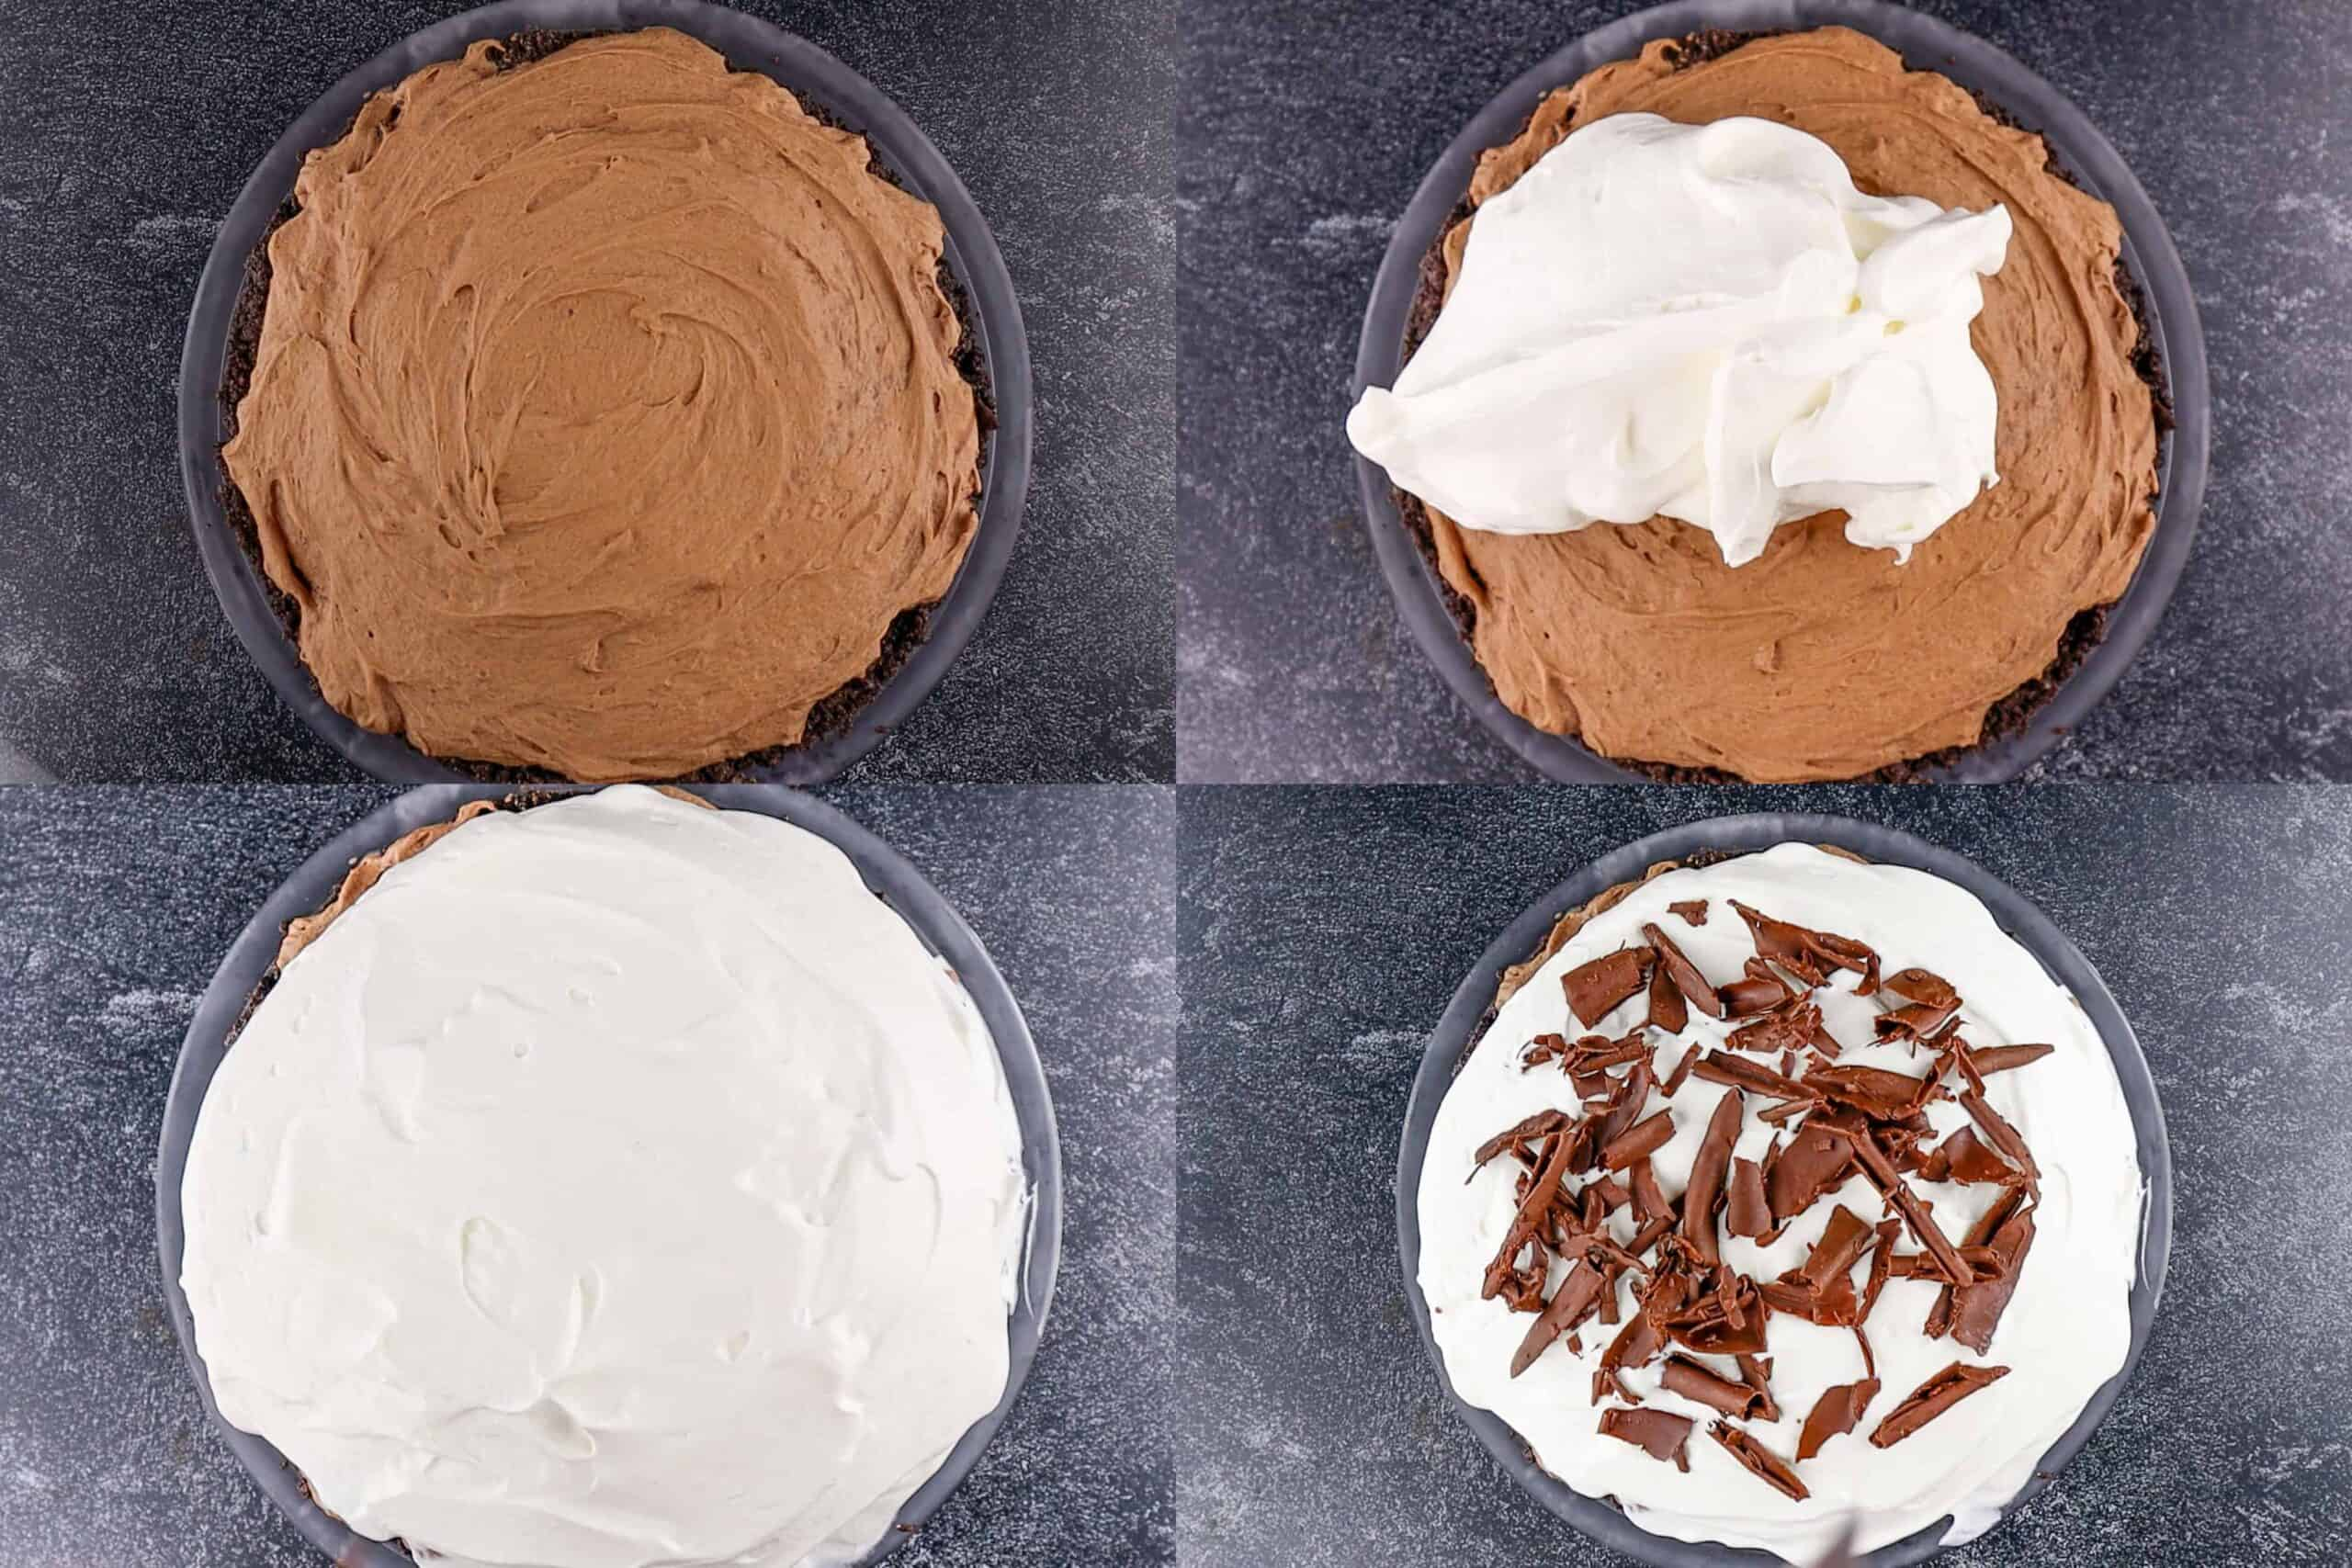 adding the whipped topping and chocolate curls to pie process photos